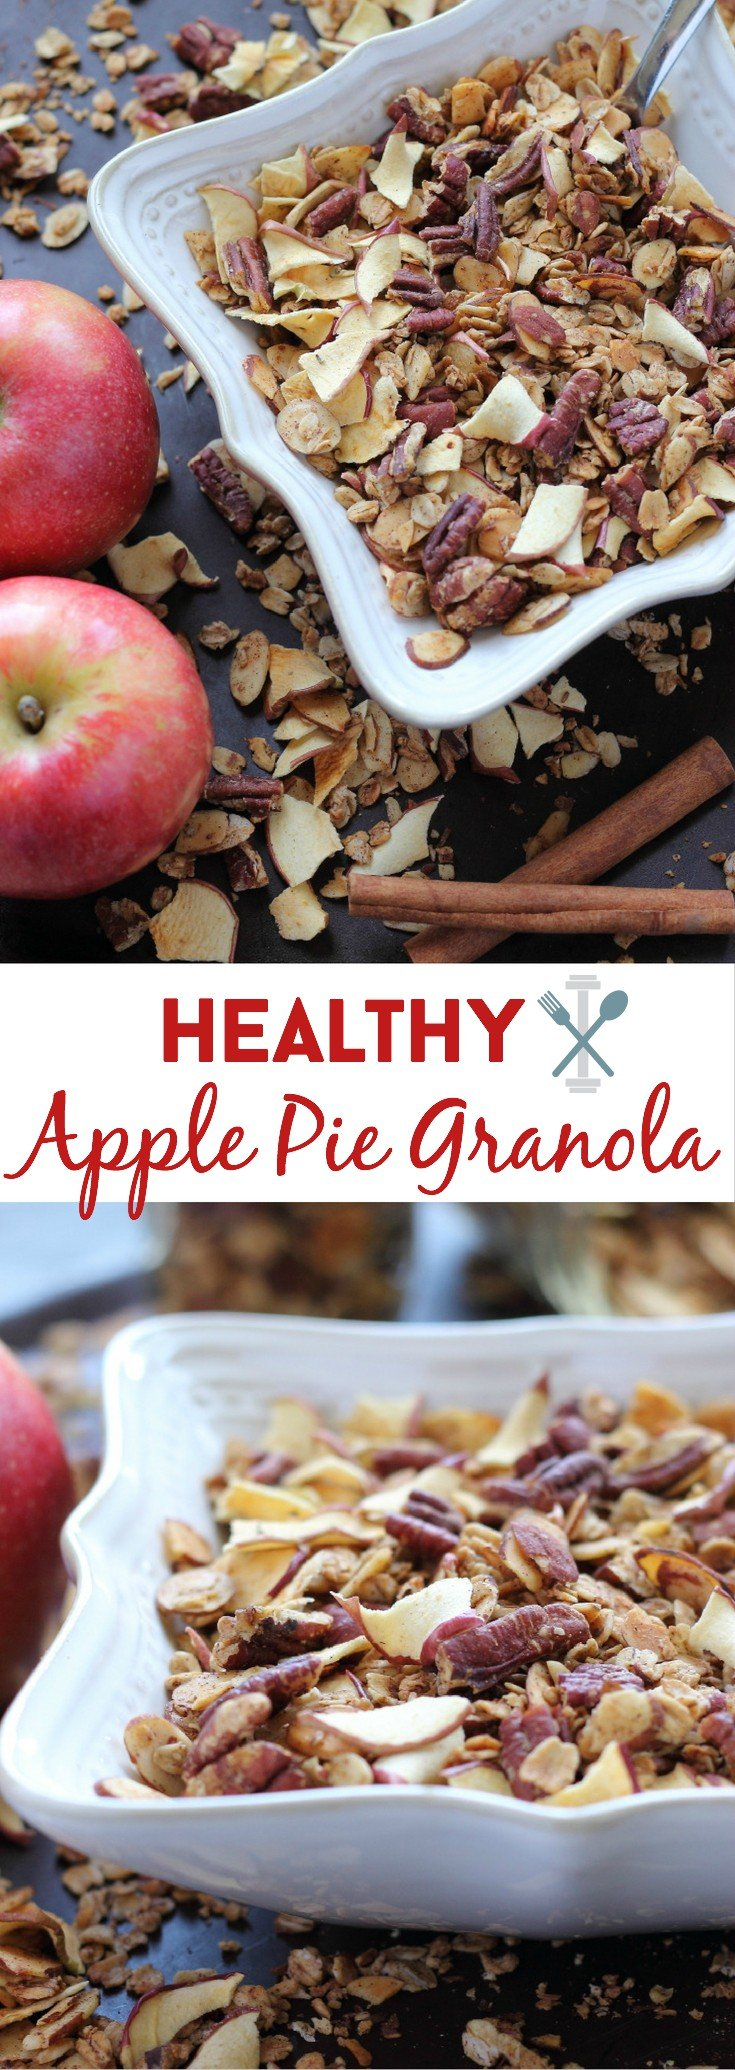 Refined sugar free, made with simple ingredients with FULL apple flavor. This granola is an amazing breakfast or snack!